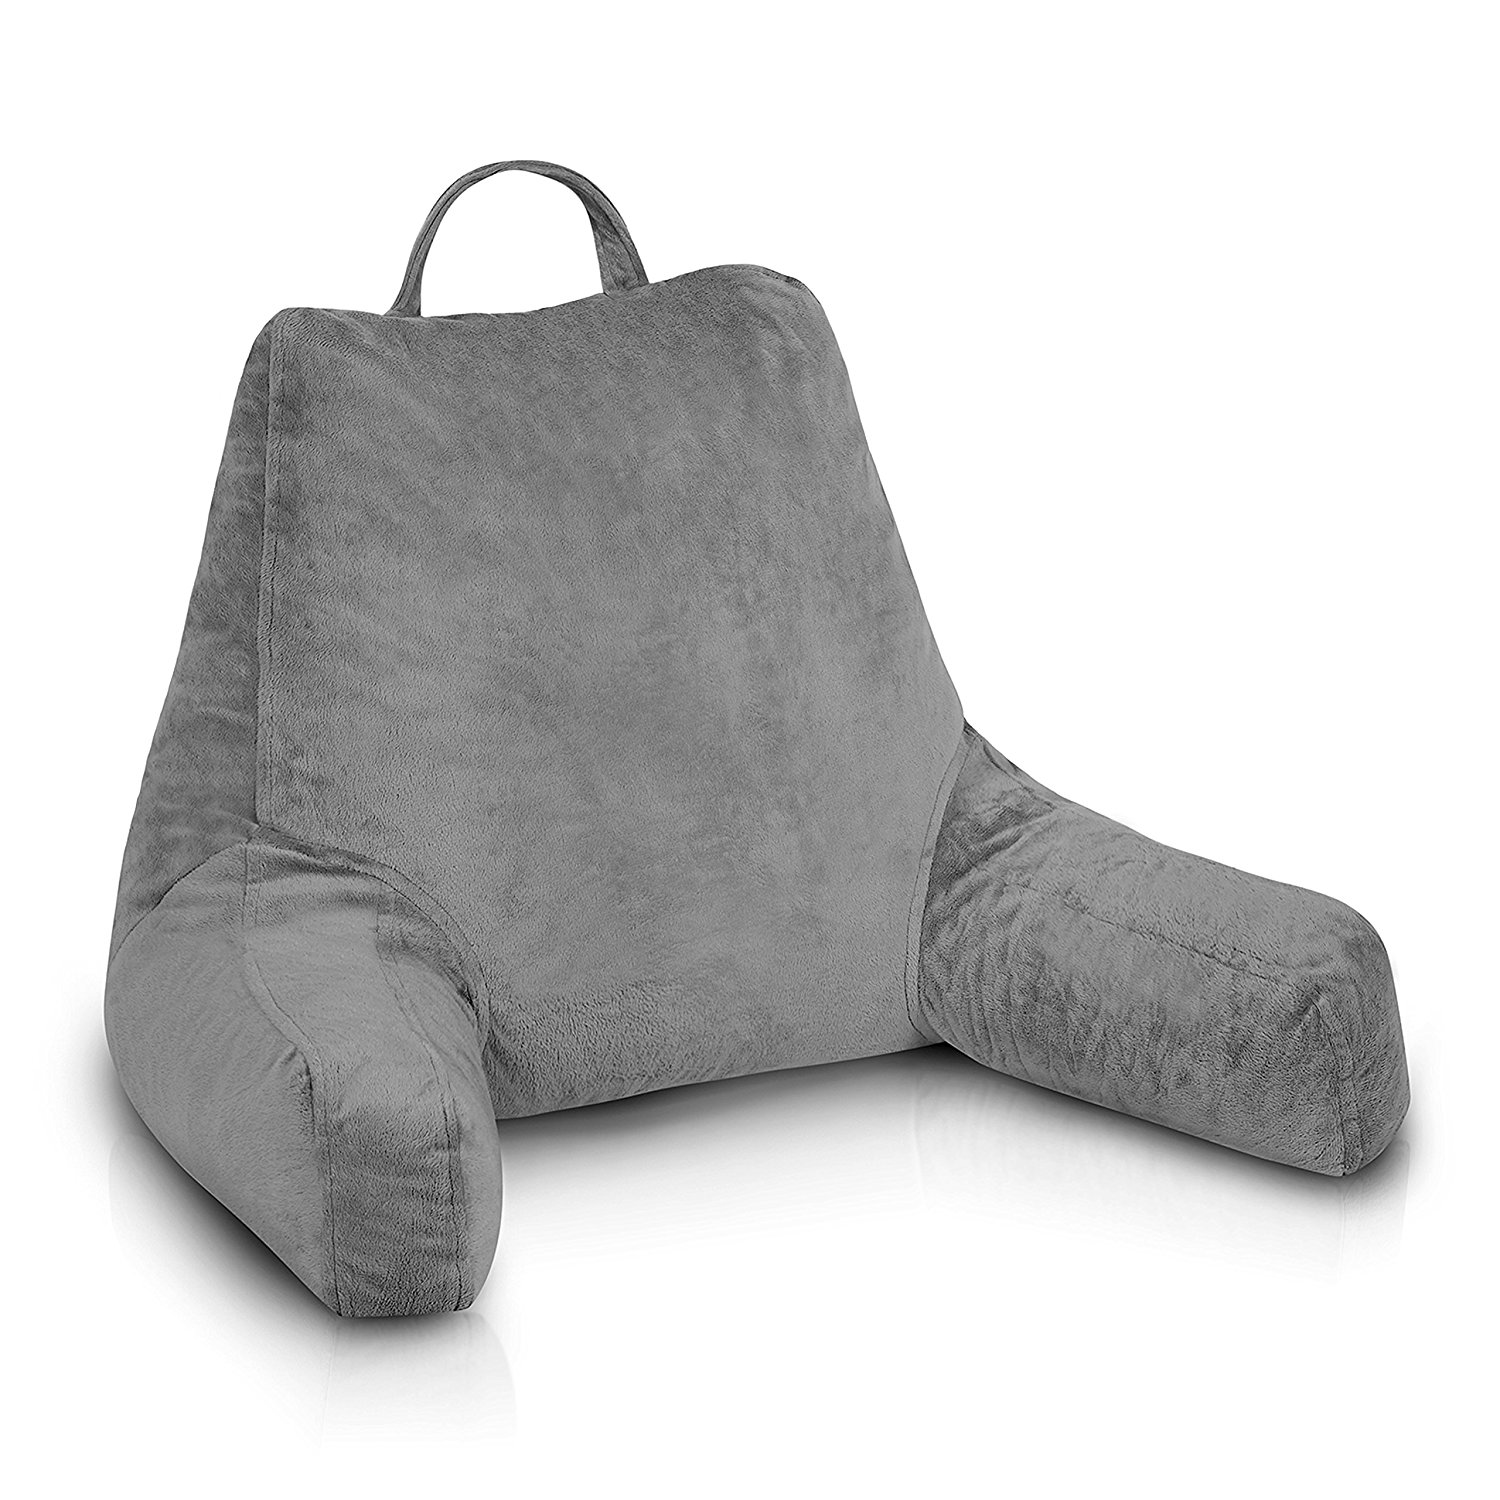 ideas: bed rest pillow target | bed pillow with arms | plush bedrest